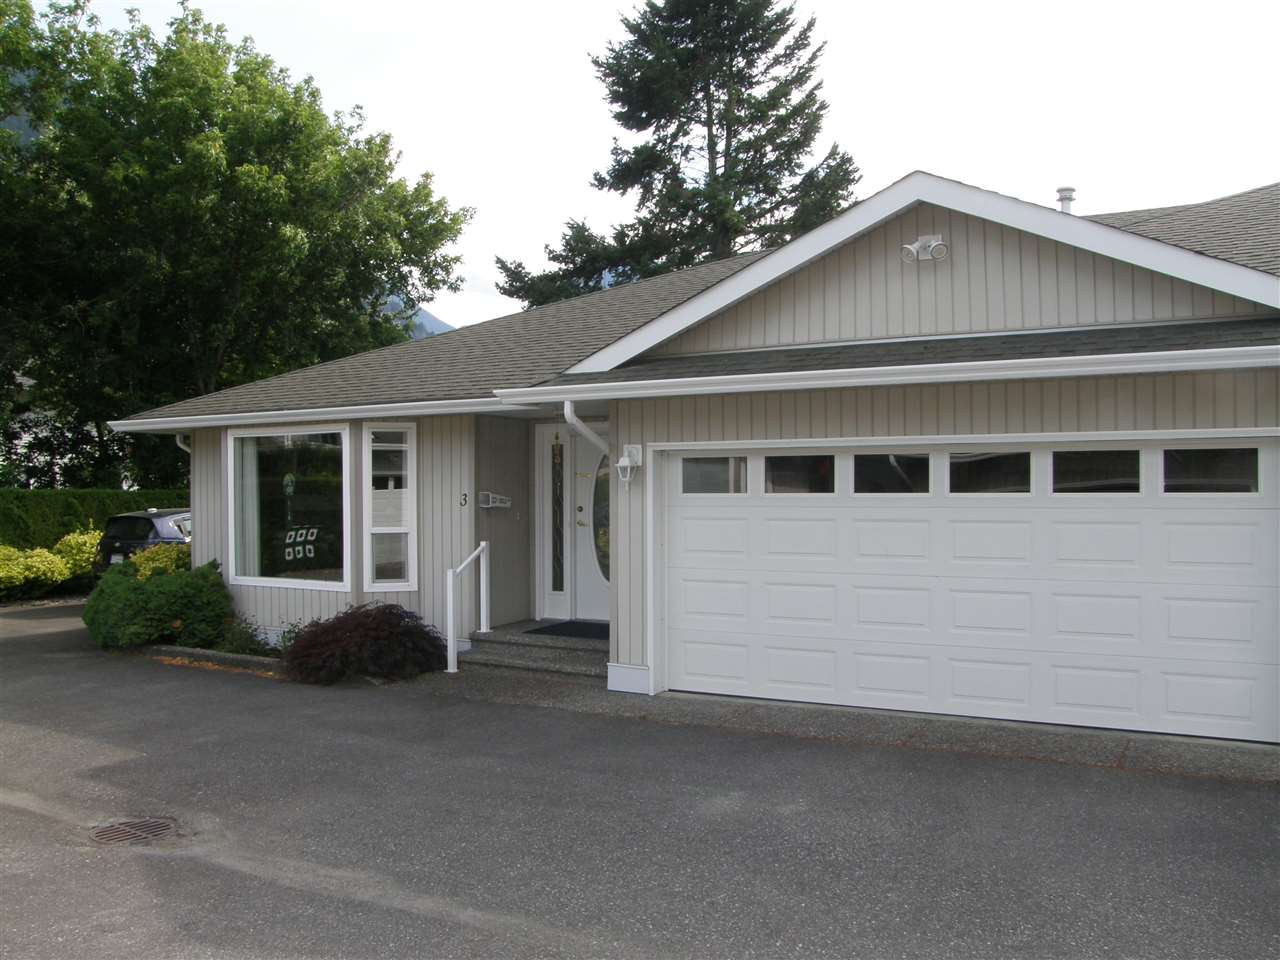 Main Photo: 3 530 COQUIHALLA Street in Hope: Hope Center Townhouse for sale : MLS® # R2186840